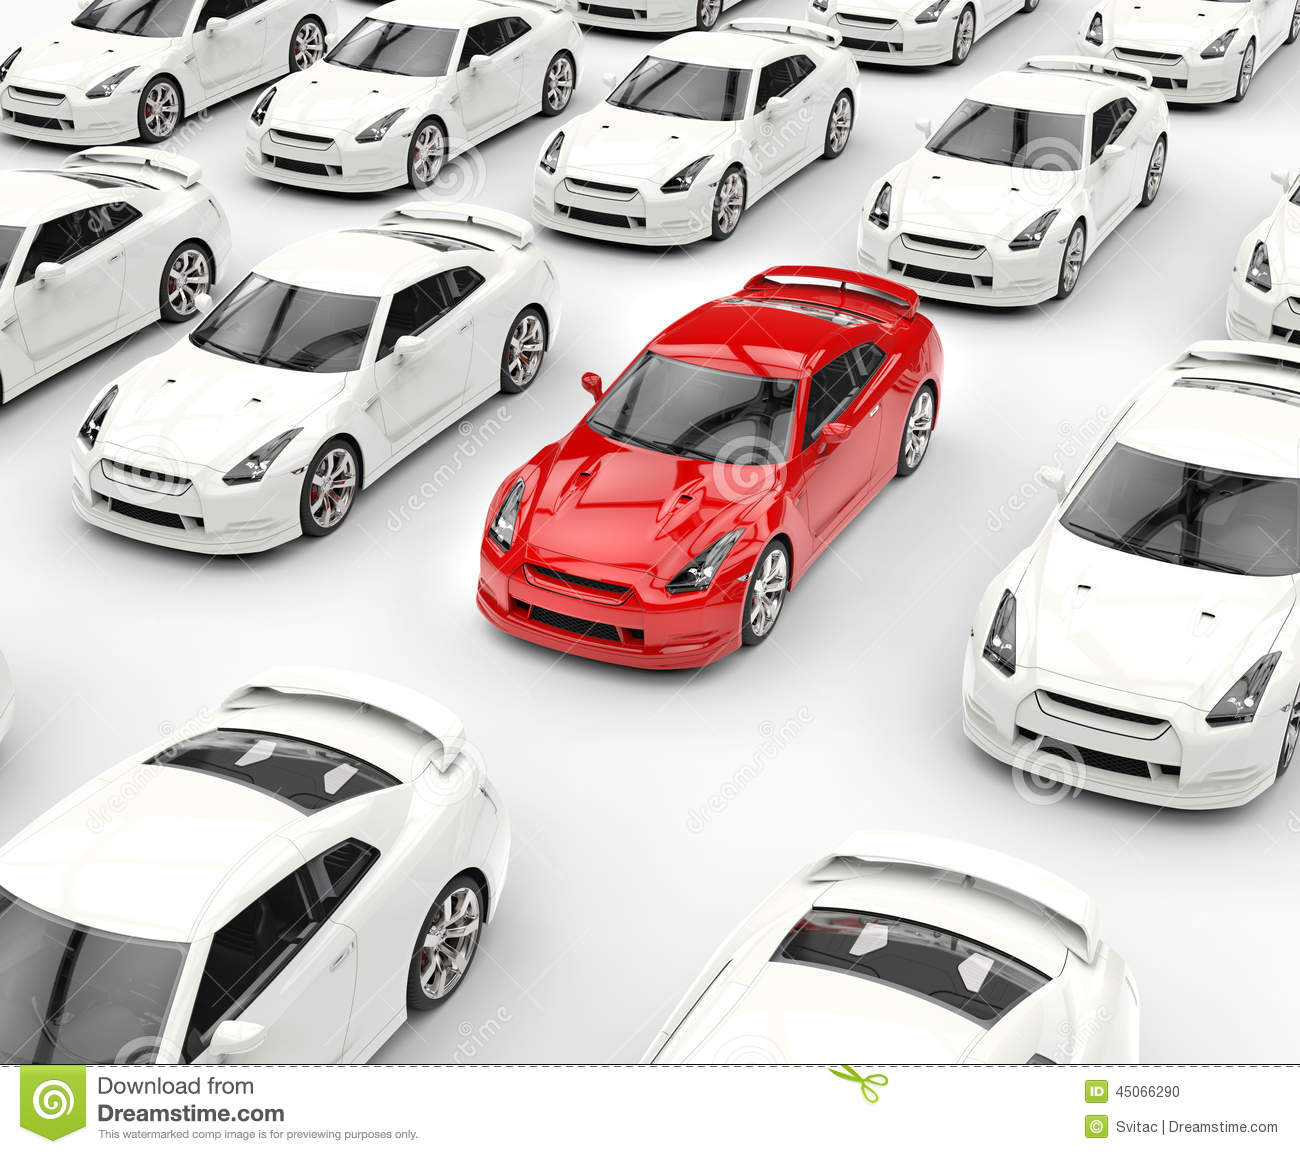 red car stands out among many white cars stock. Black Bedroom Furniture Sets. Home Design Ideas